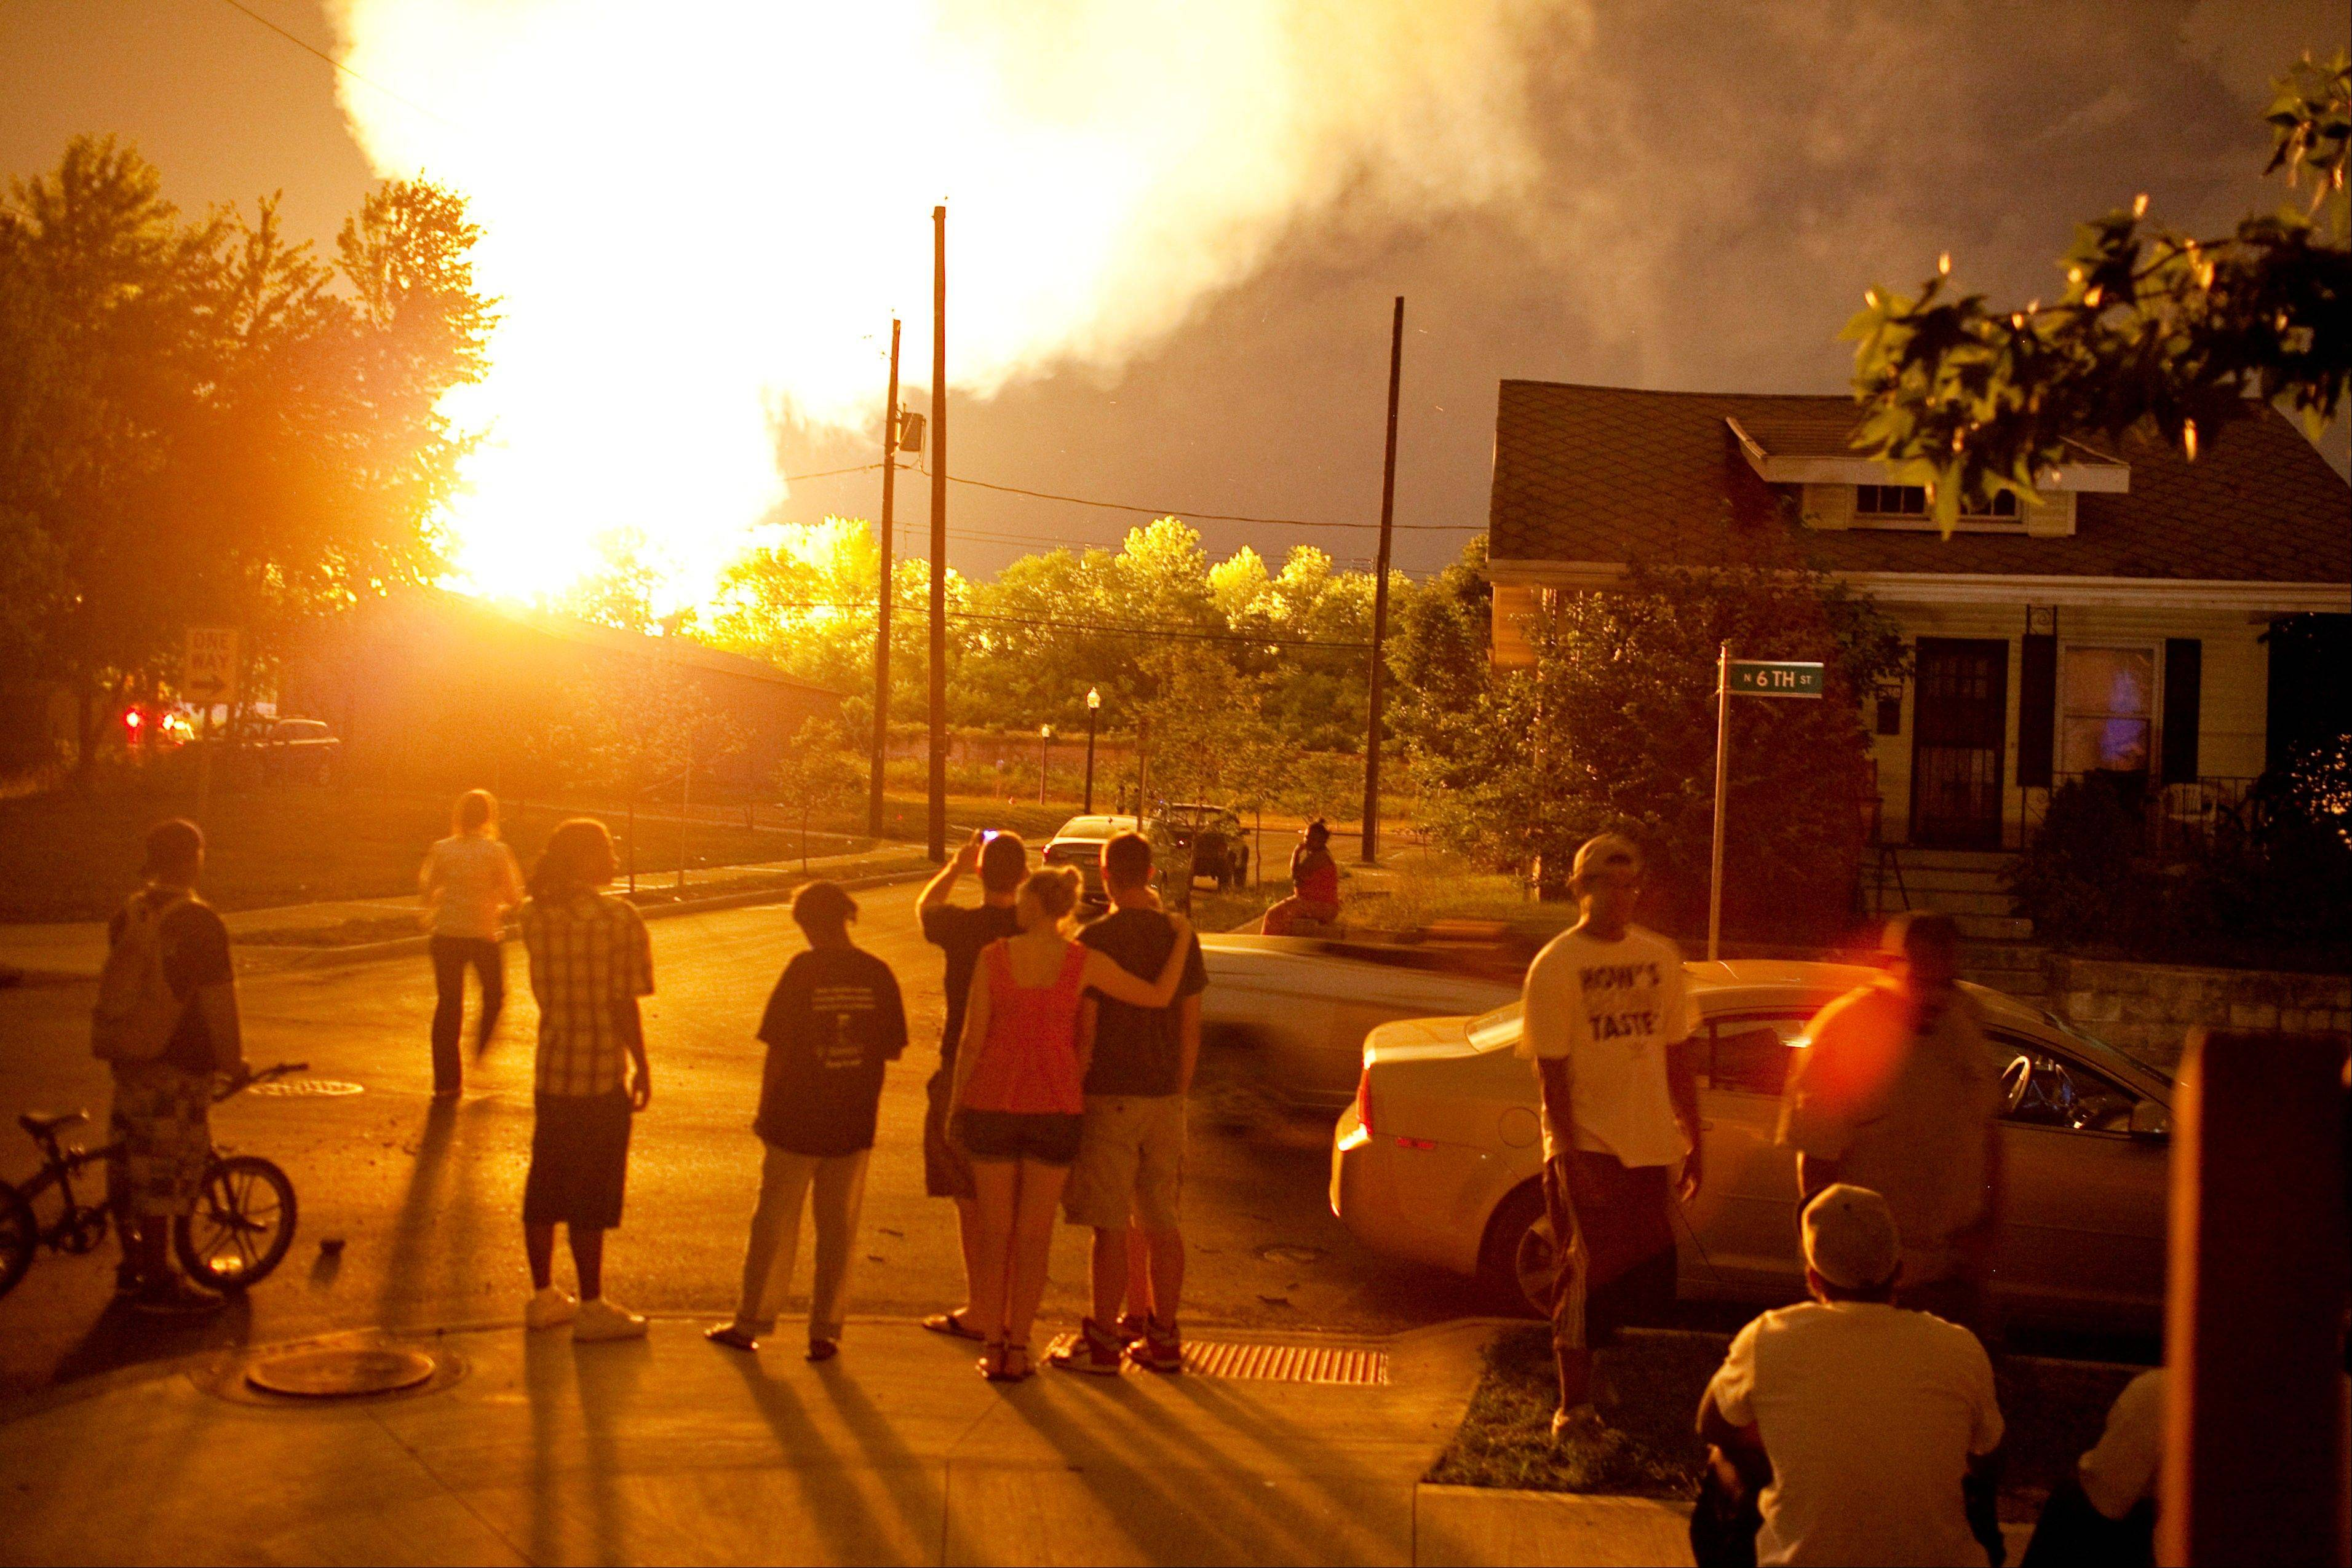 Flames rise from a derailed freight train, left unseen, early Wednesday July 11, 2012, in Columbus Ohio. Part of a freight train carrying ethanol derailed and caught fire in Ohio's capital city early Wednesday, shooting flames skyward into the darkness and prompting the evacuation of a mile-wide area.